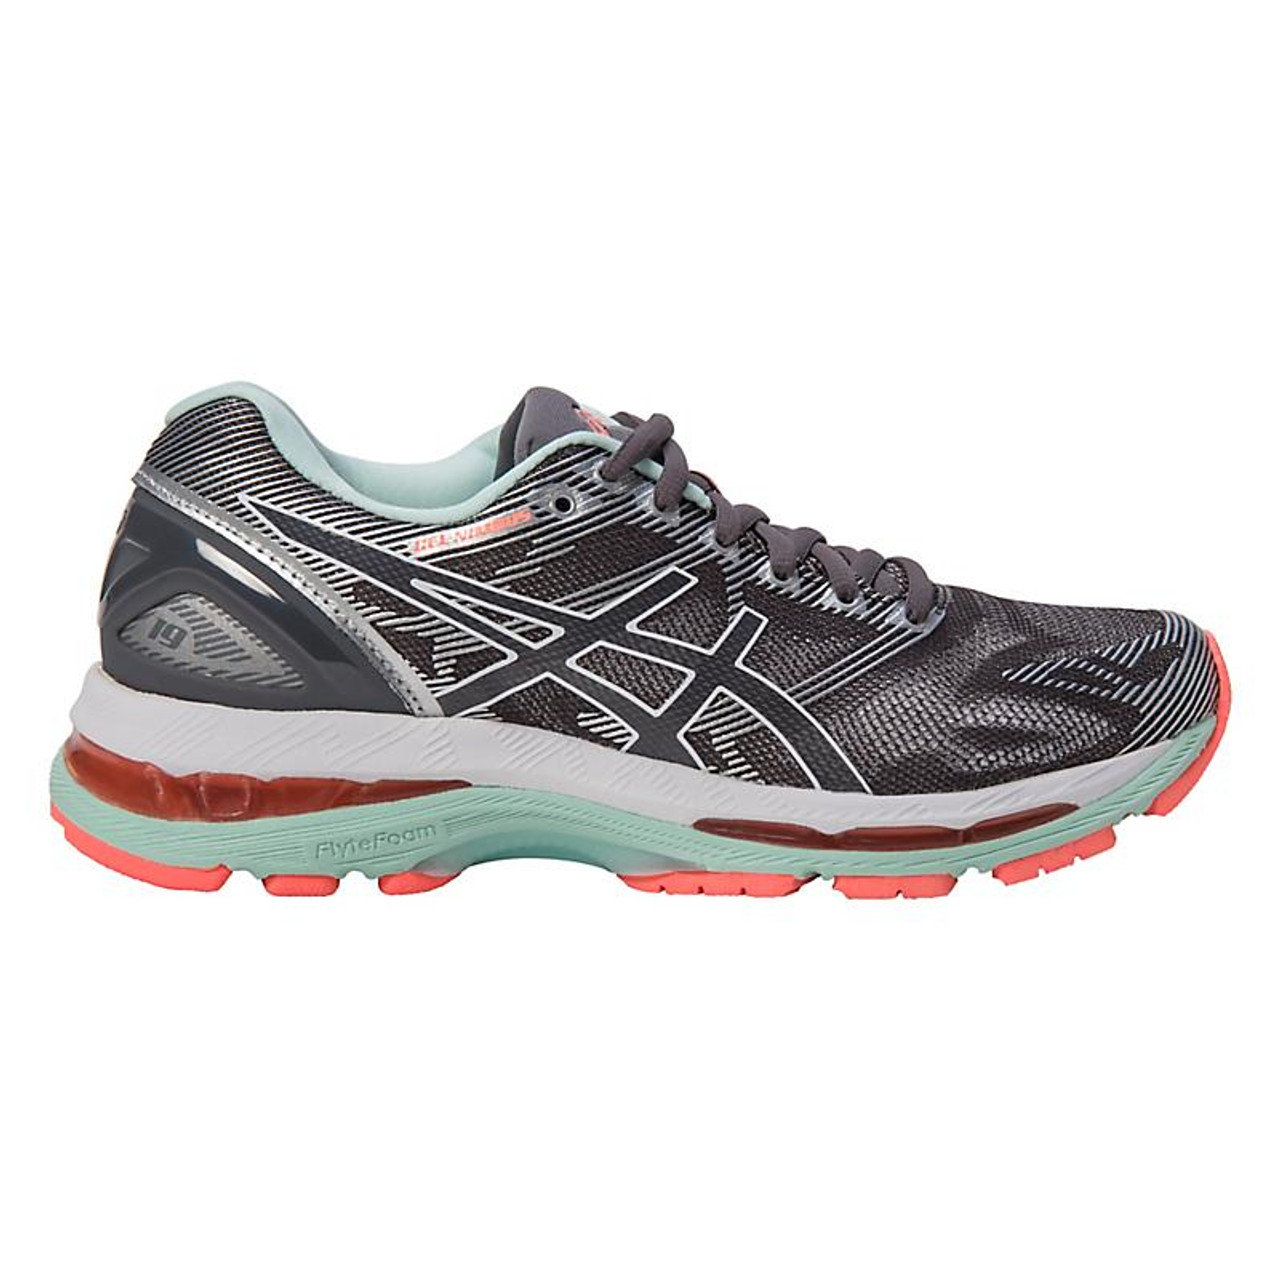 grossiste 49543 e37d6 Women's ASICS GEL-Nimbus 19